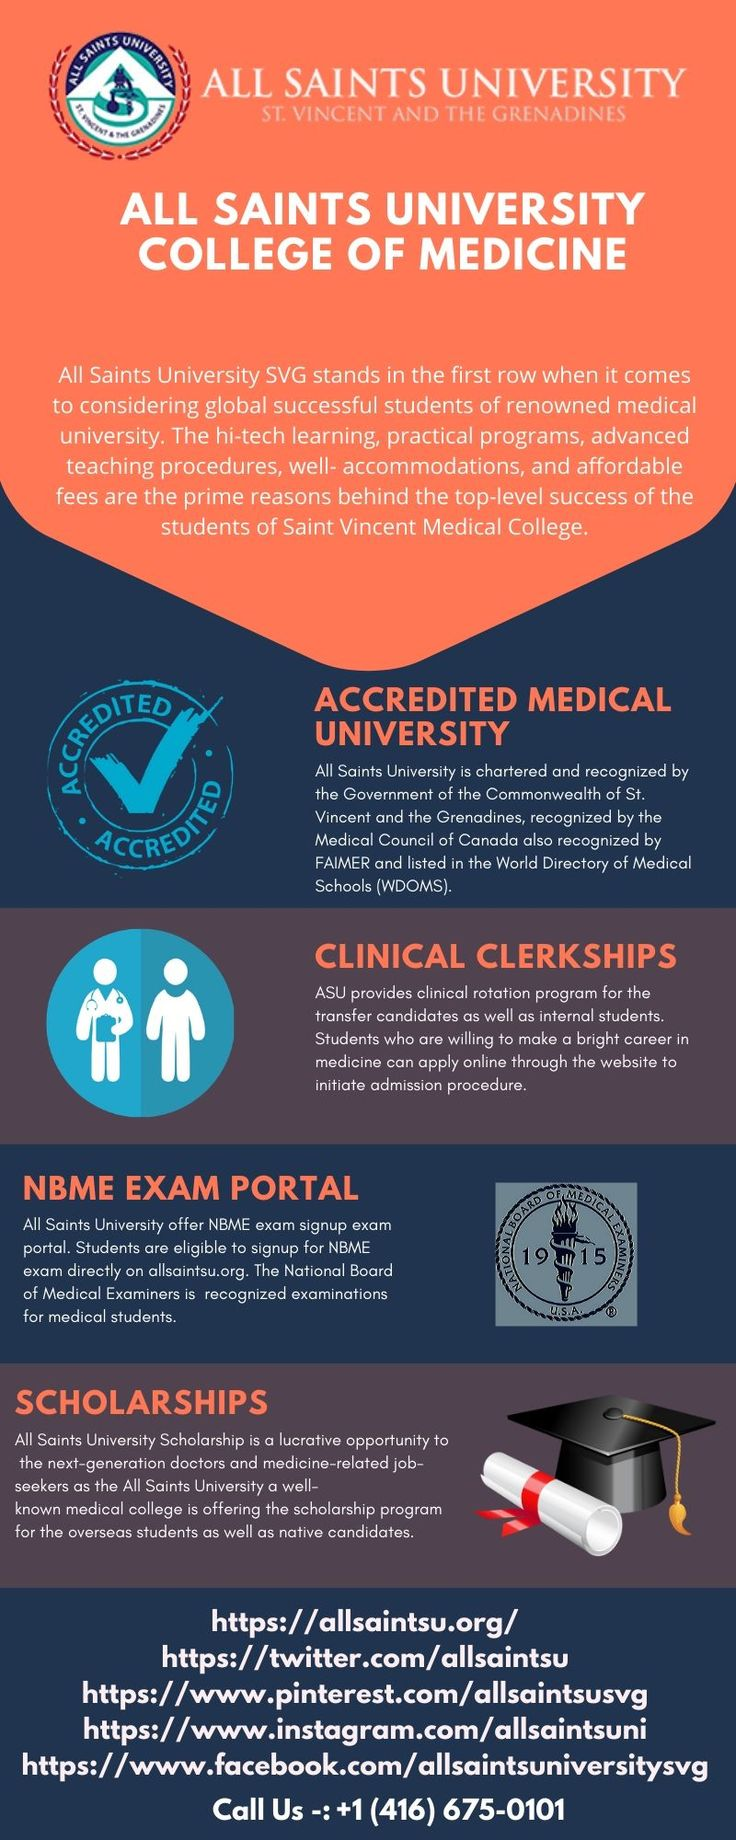 Accredited Caribbean Medical University For MD Degree